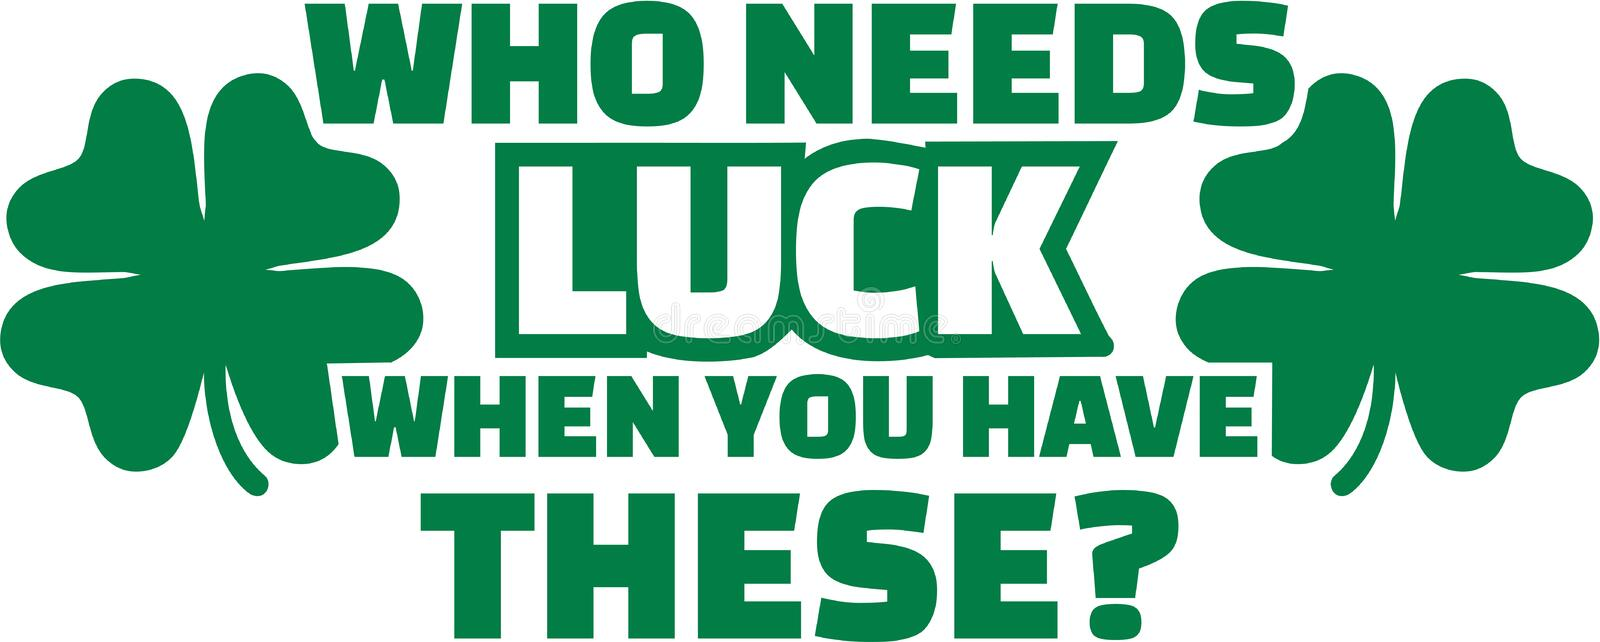 Irish Shirt design - Who needs luck when you have these. Vector vector illustration